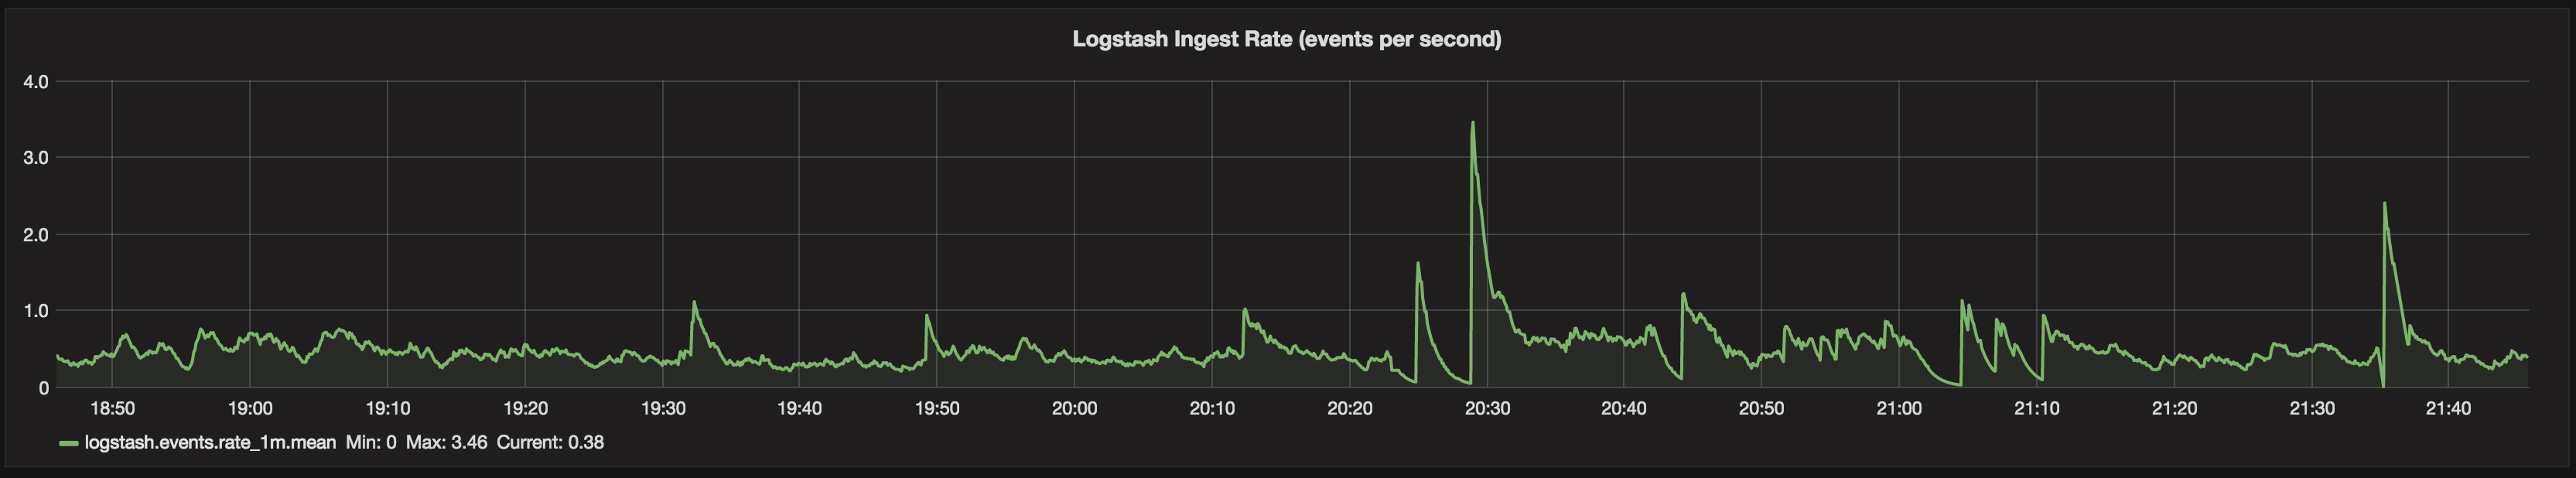 Monitoring Logstash Ingest Rates with InfluxDB and Grafana